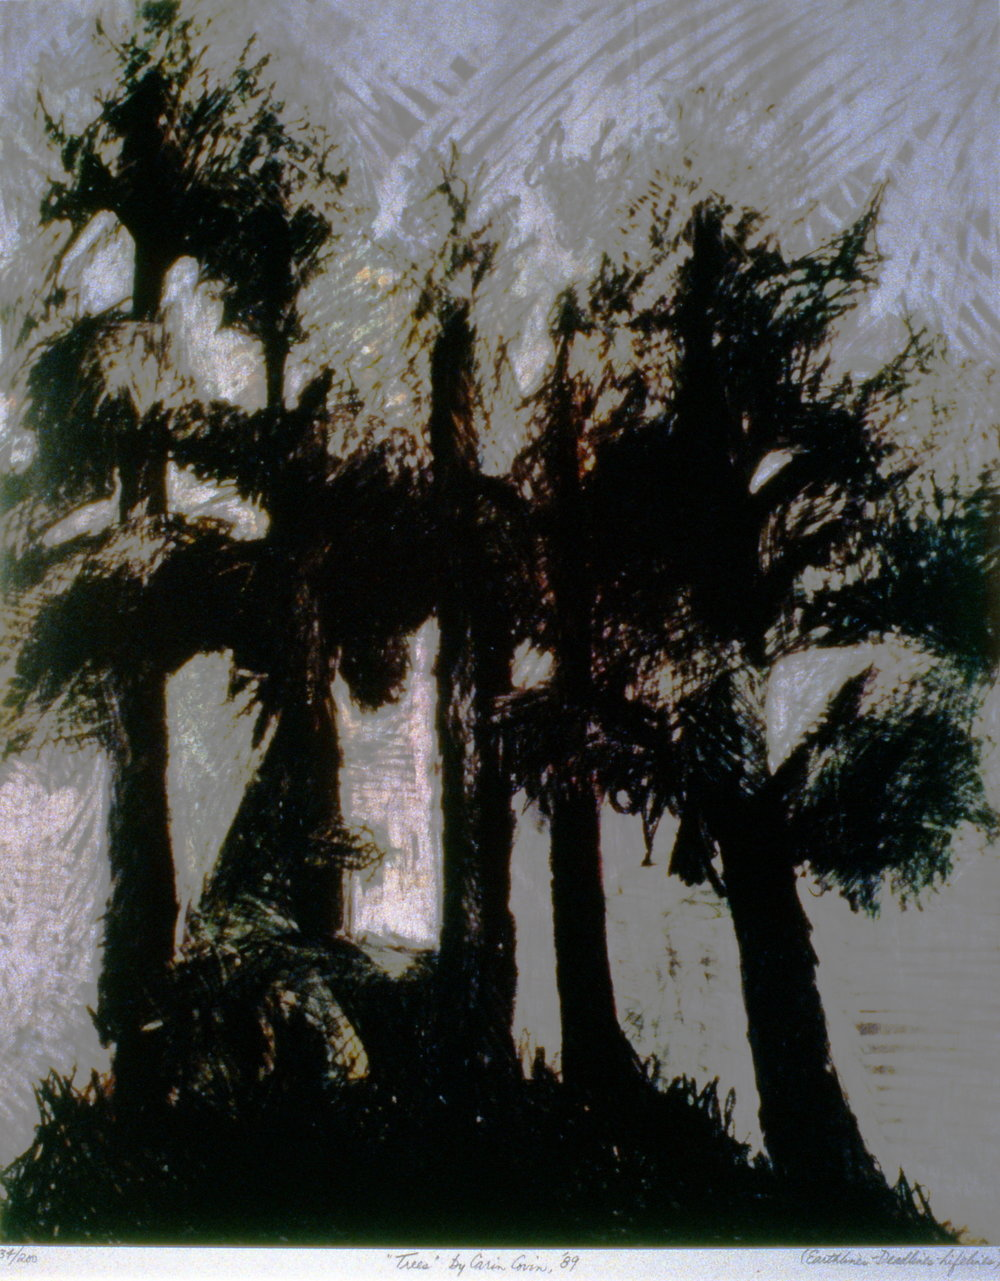 Trees,  1989, Carin Covin, drawing, 45.5 x 37 cm, 1995.06.01